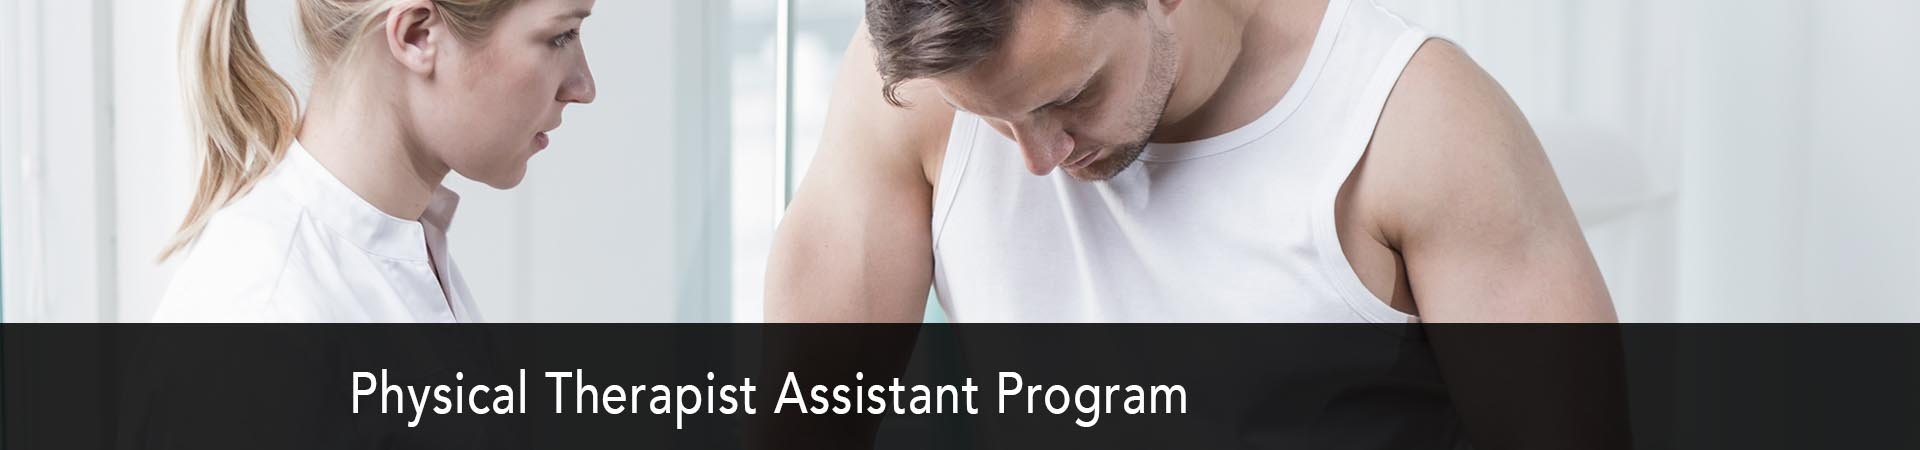 Explore the Physical Therapist Assistant Program at NC